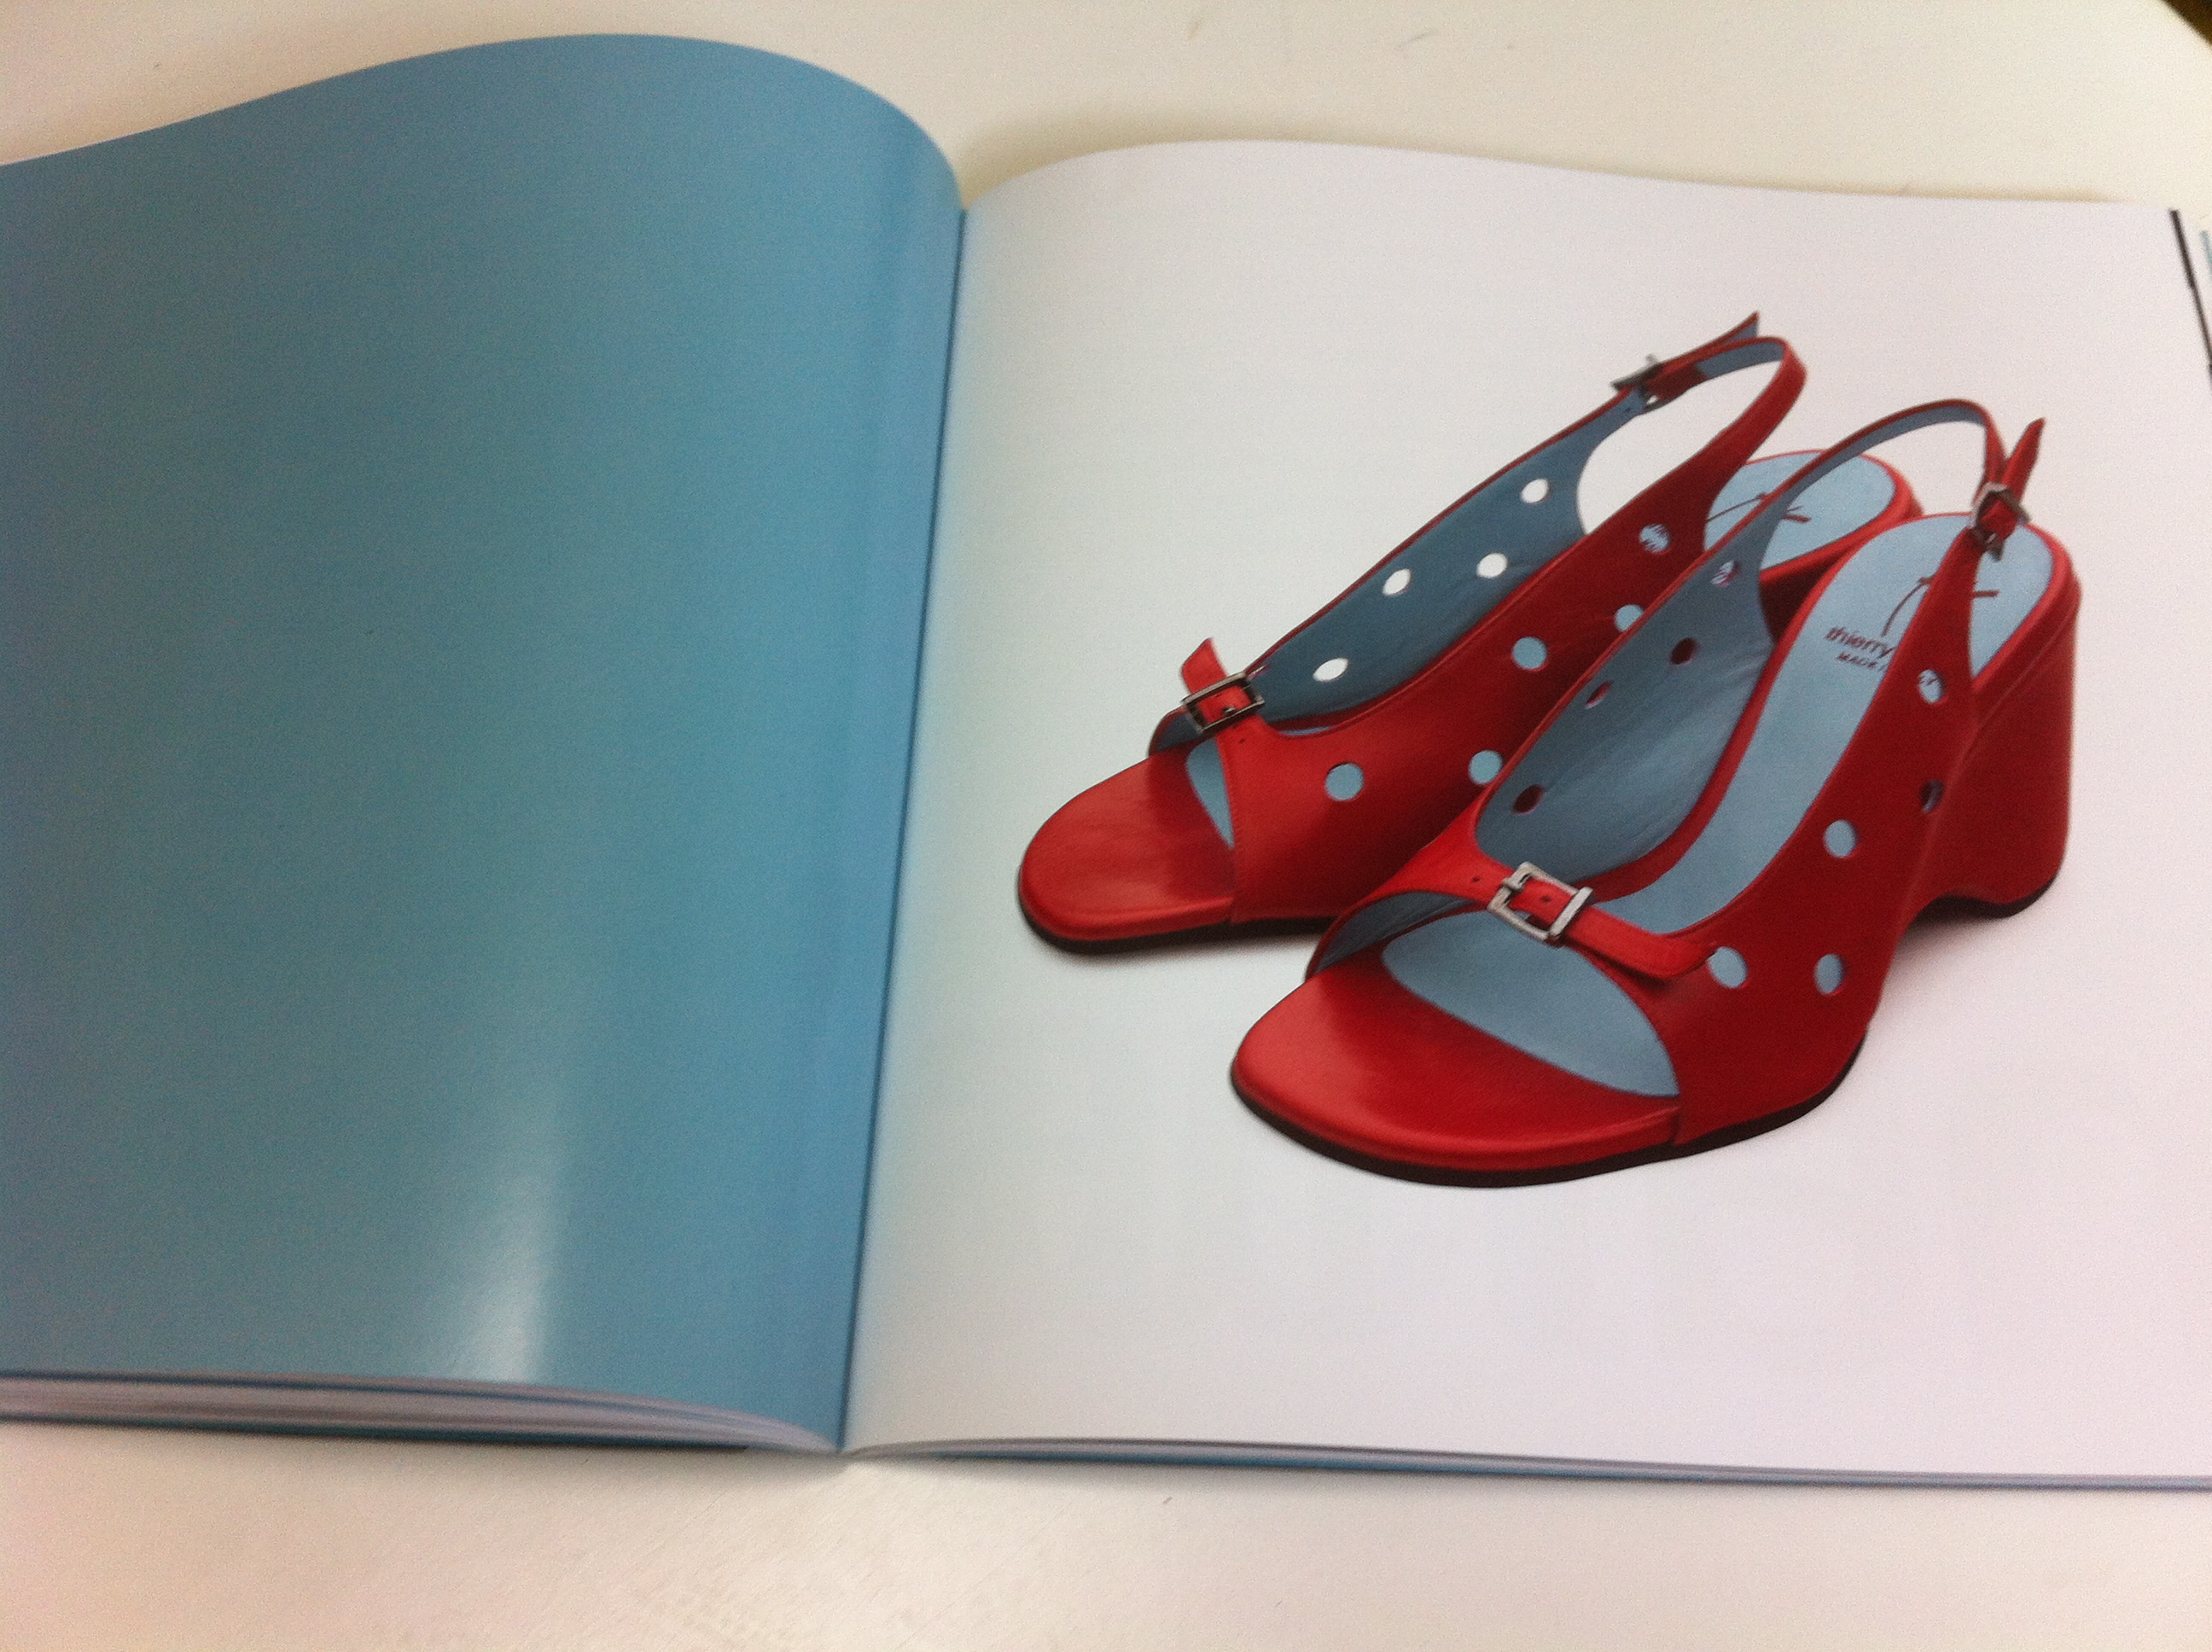 official photos a7c48 e3e41 Red shoes by Thierry Rabotin – The Writing Business